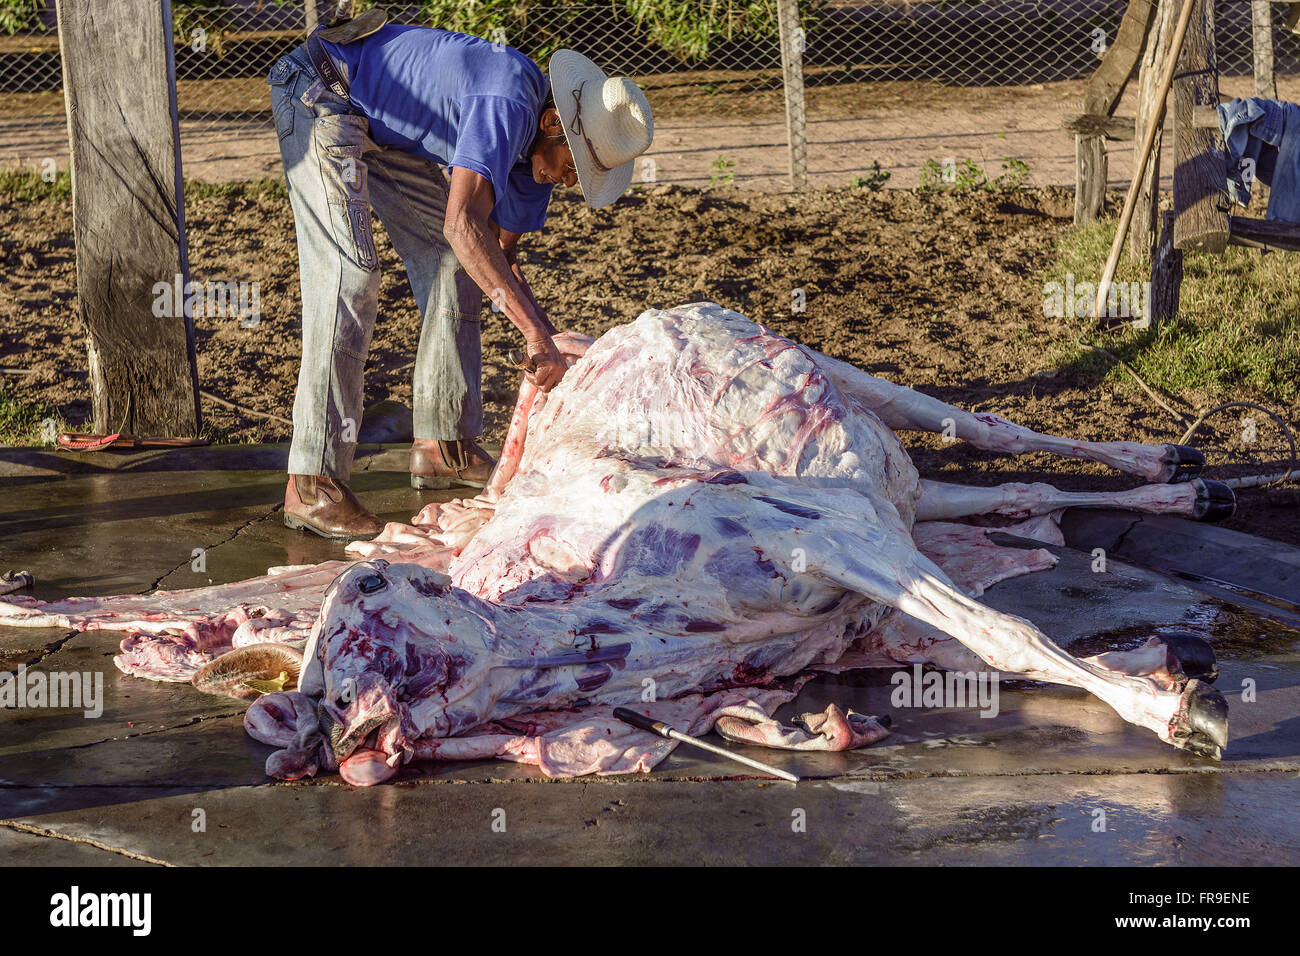 Slaughtered cow farm being dissected in the Pantanal - Stock Image